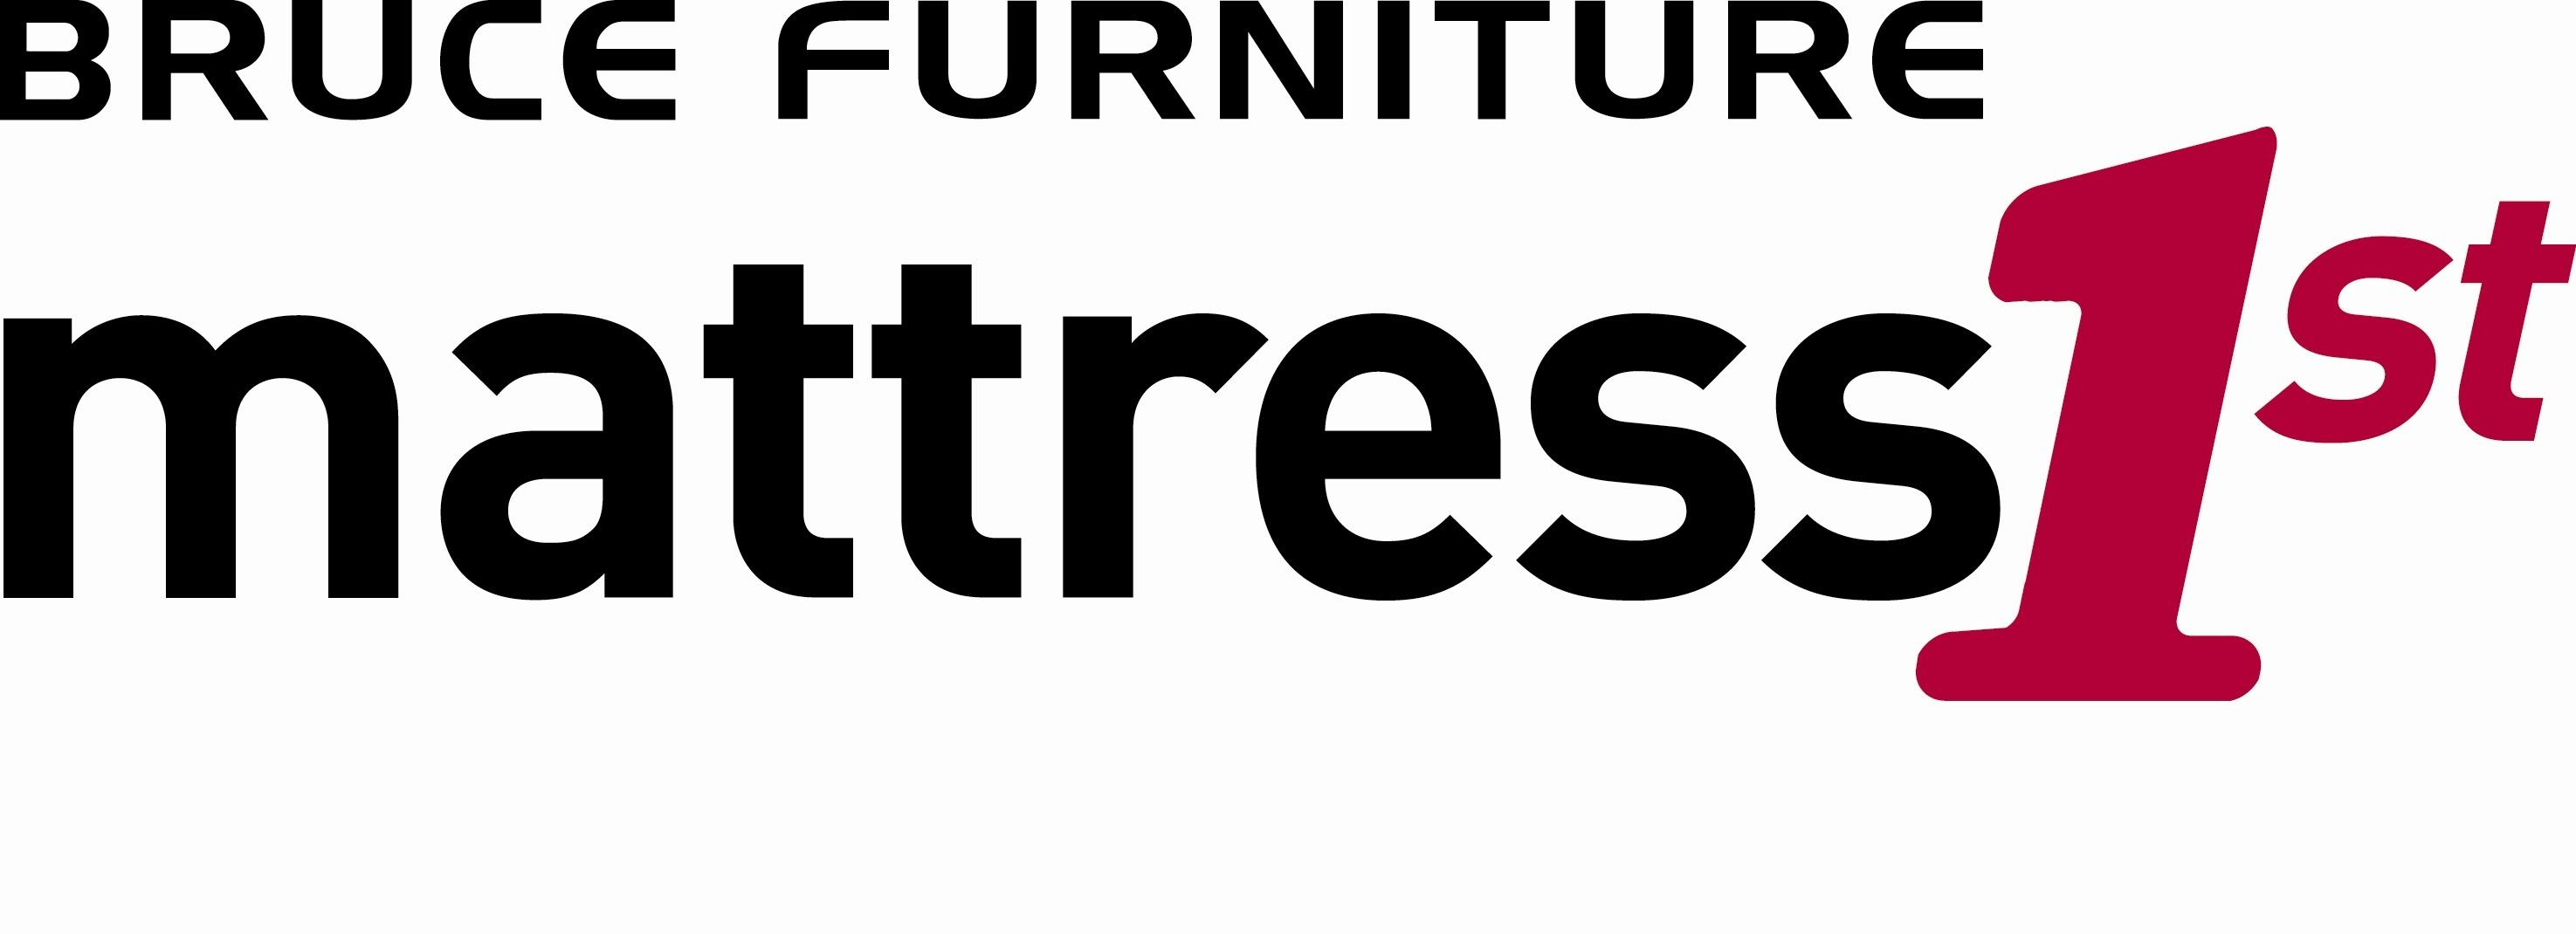 Bruce Furniture Floor Covering Coupons Near Me In Kearney 8coupons